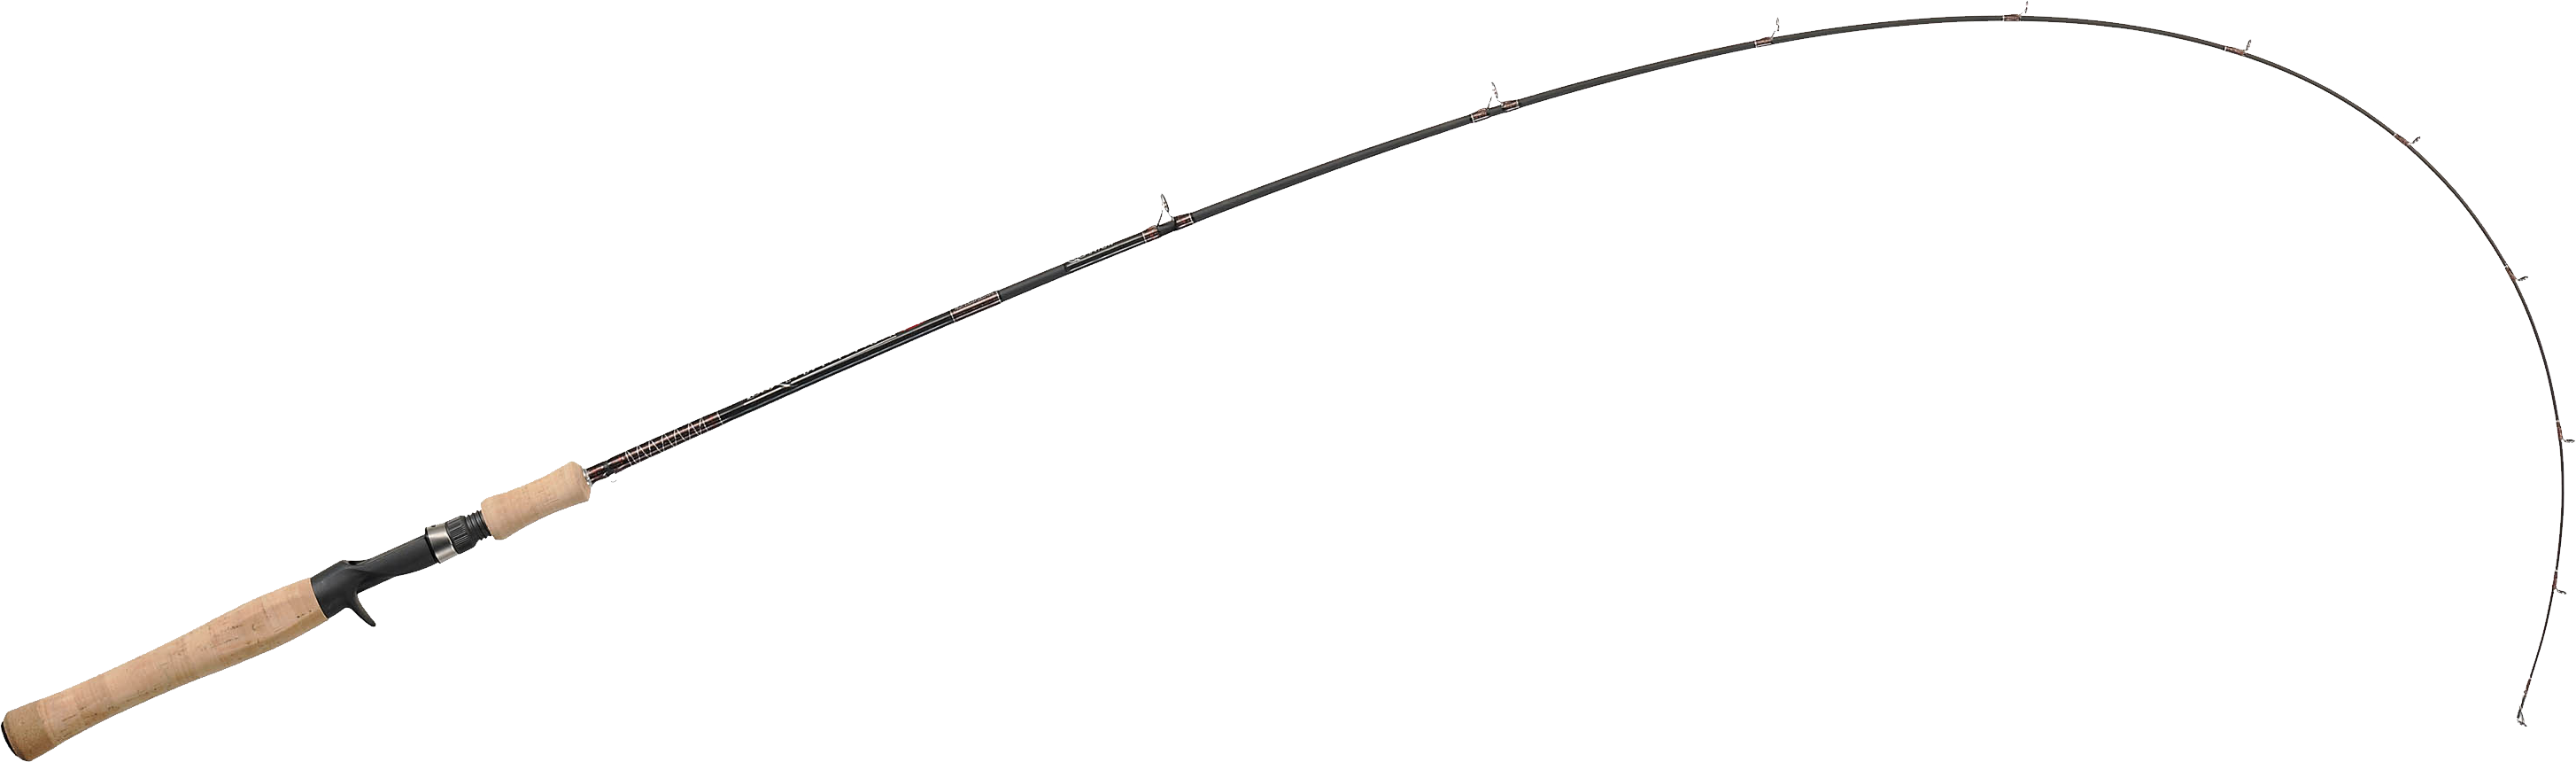 Lines clipart fishing pole 3 rod fishing image images